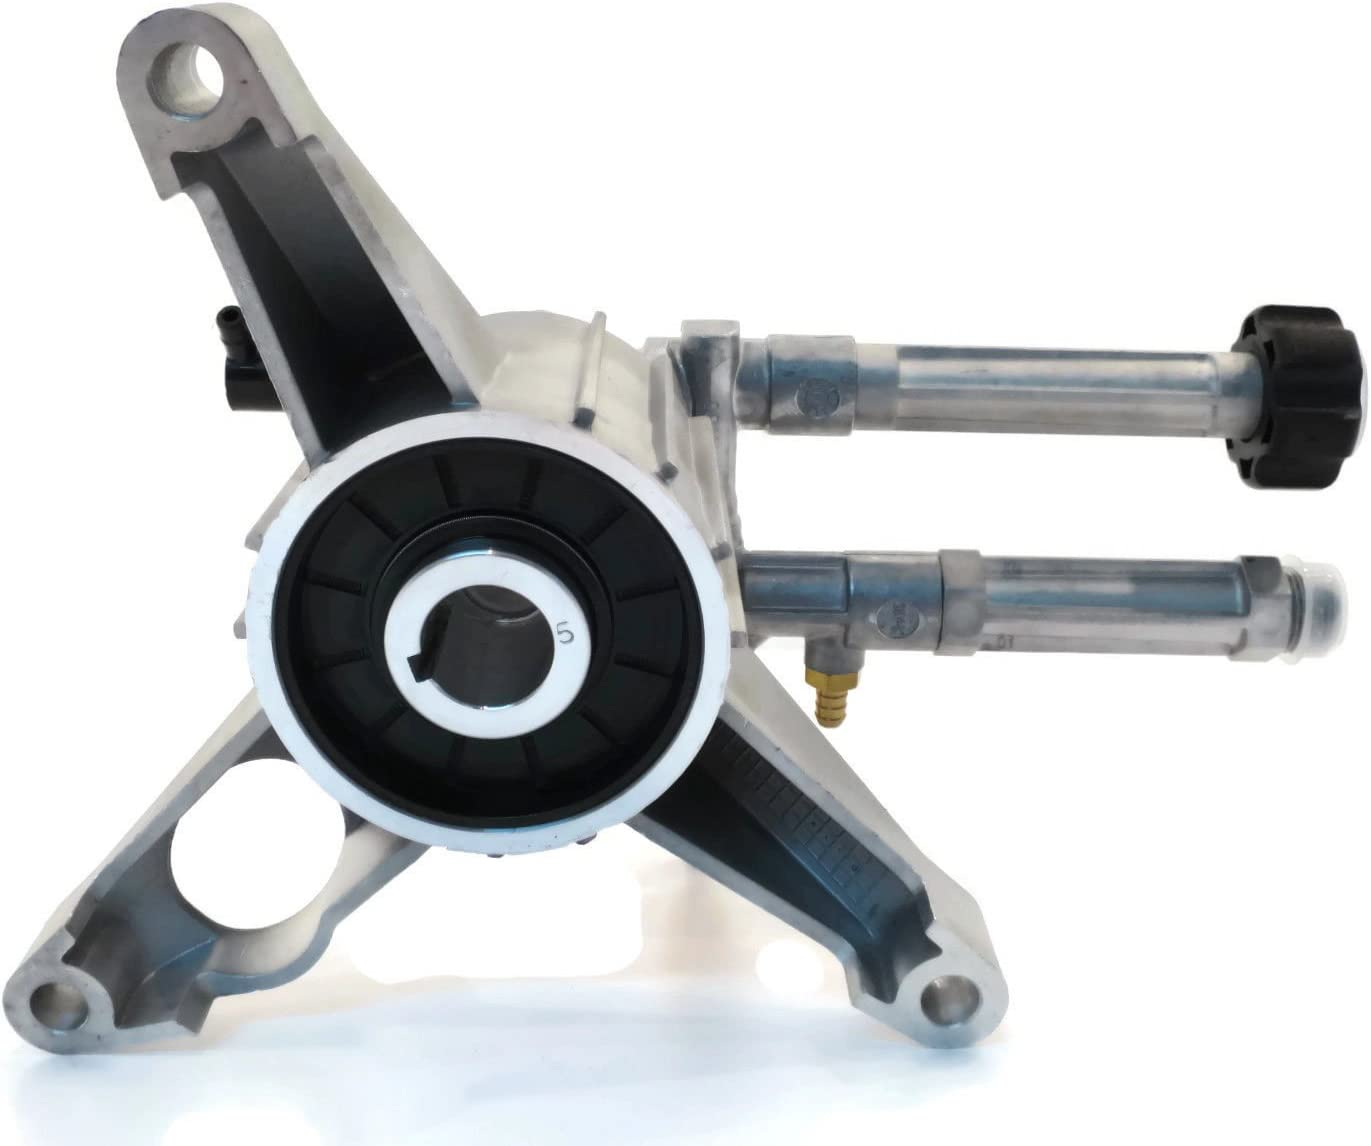 NEW Vertical AR PRESSURE WASHER WATER PUMP for Black Max Units 2400 psi 2.2 GPM